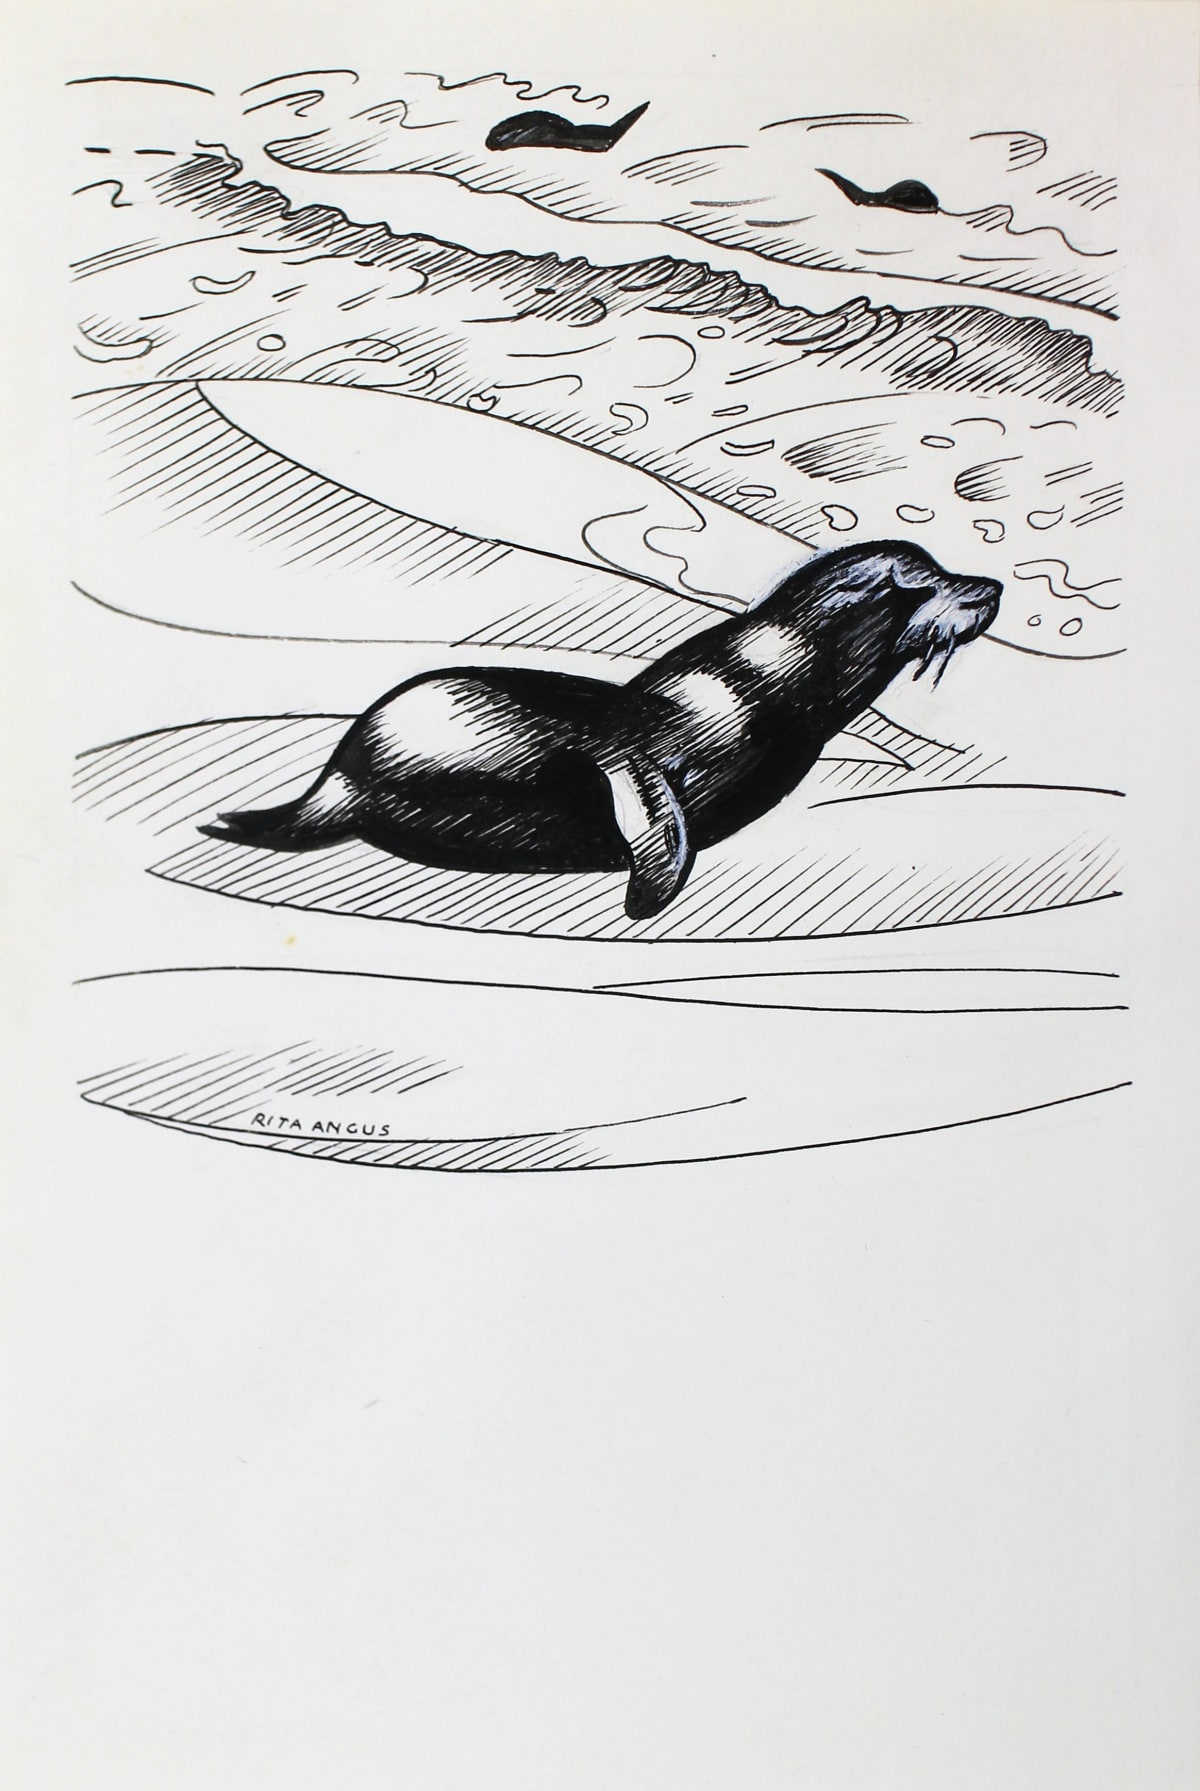 Rita Angus Untitled [Seal Large], 1950s Ink on paper 5.9 x 5.4 in 15 x 13.6 cm